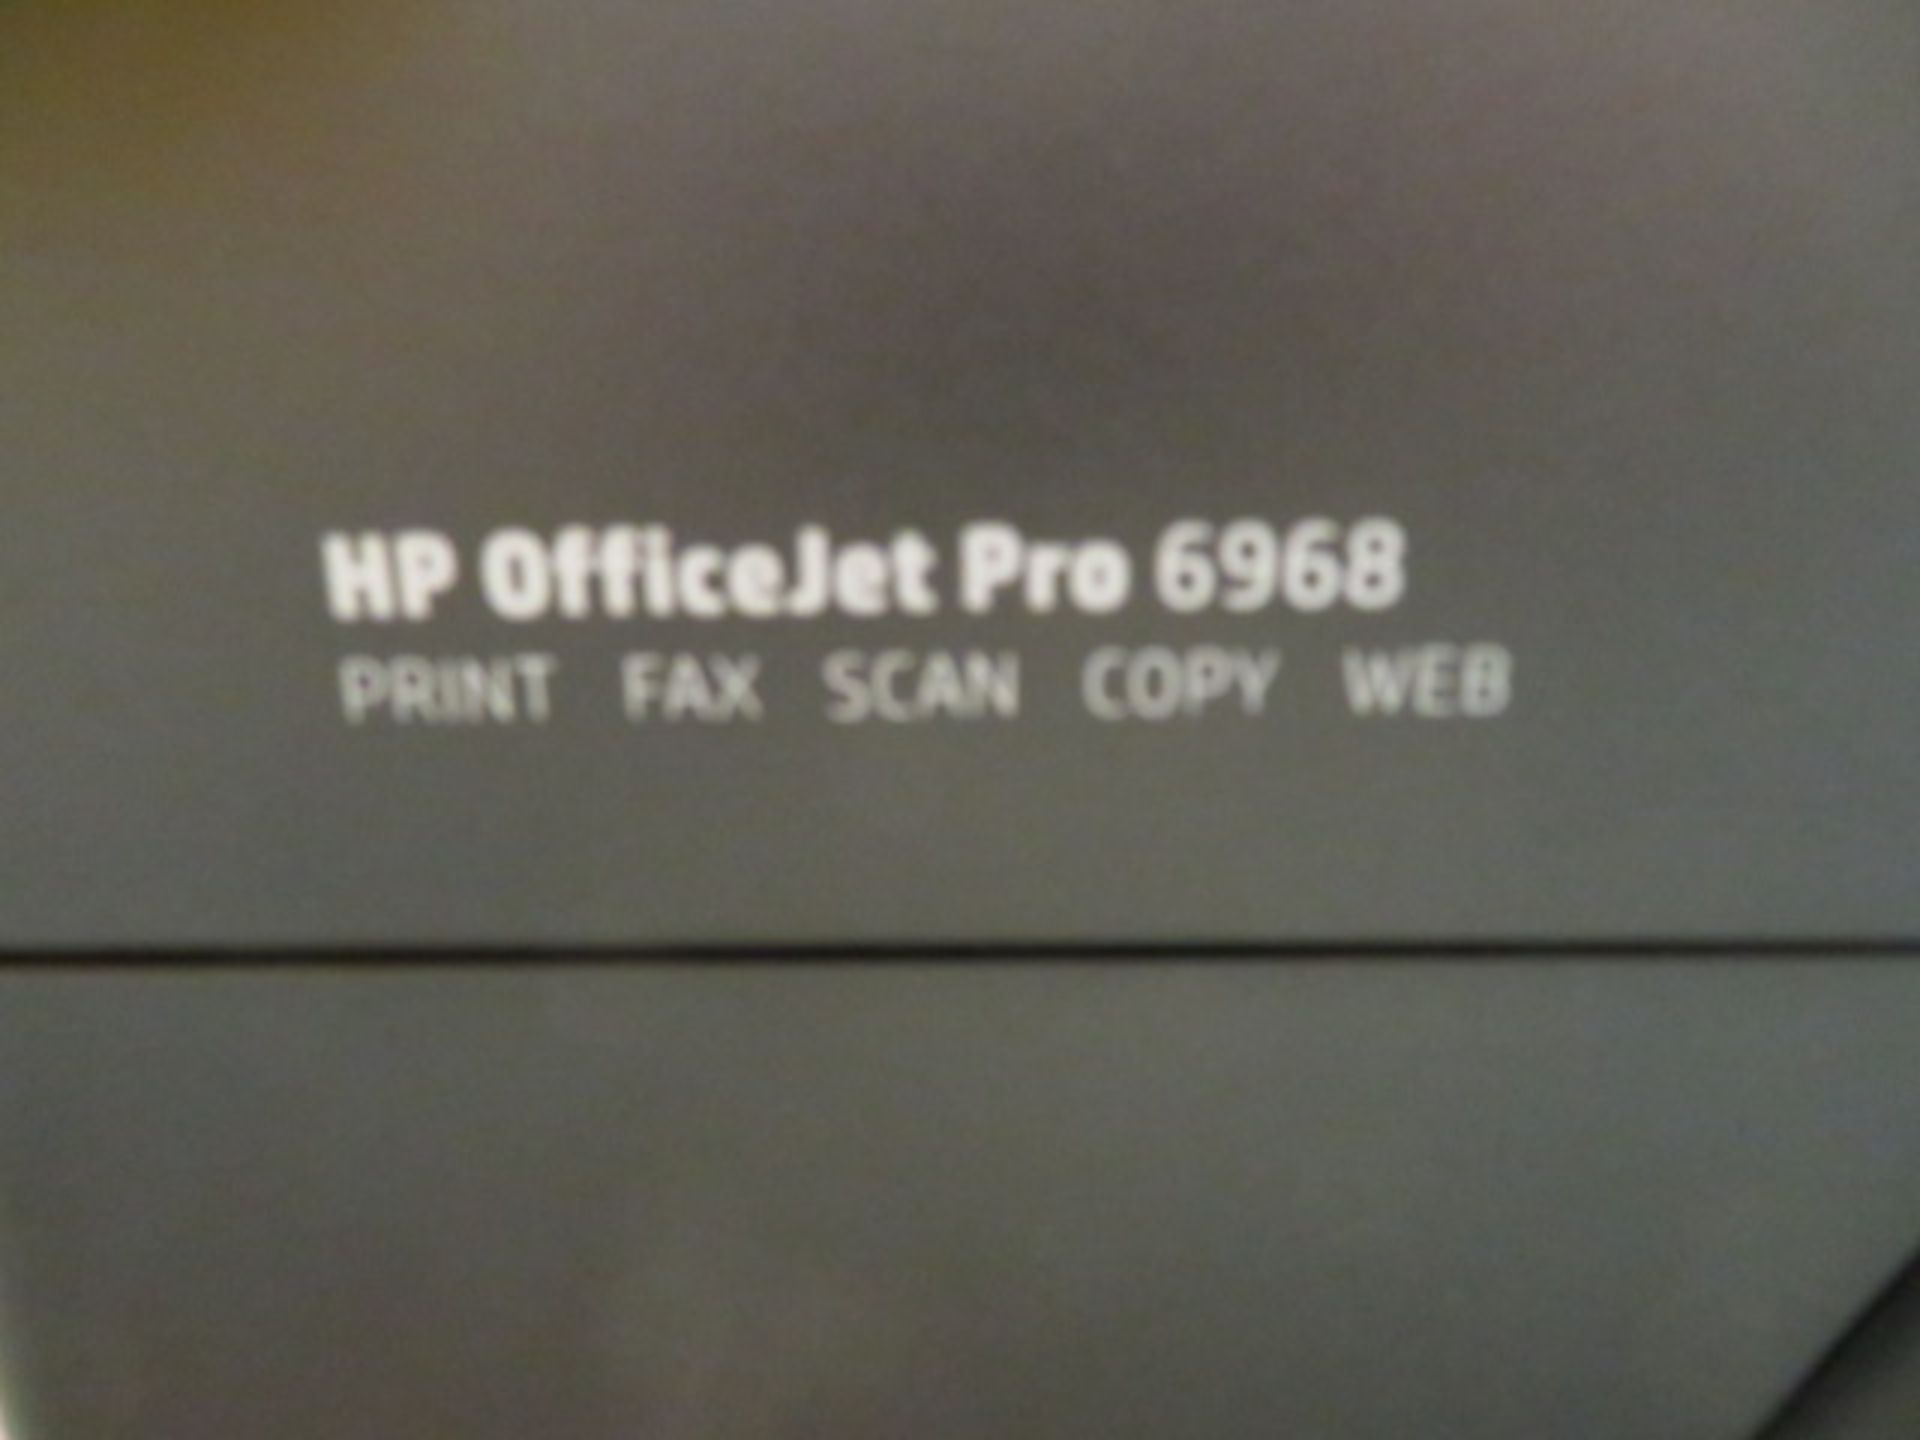 Lot 371 - PRINTER, HP OFFICE JET PRO 6968 (print, fax, scan, copy, web)